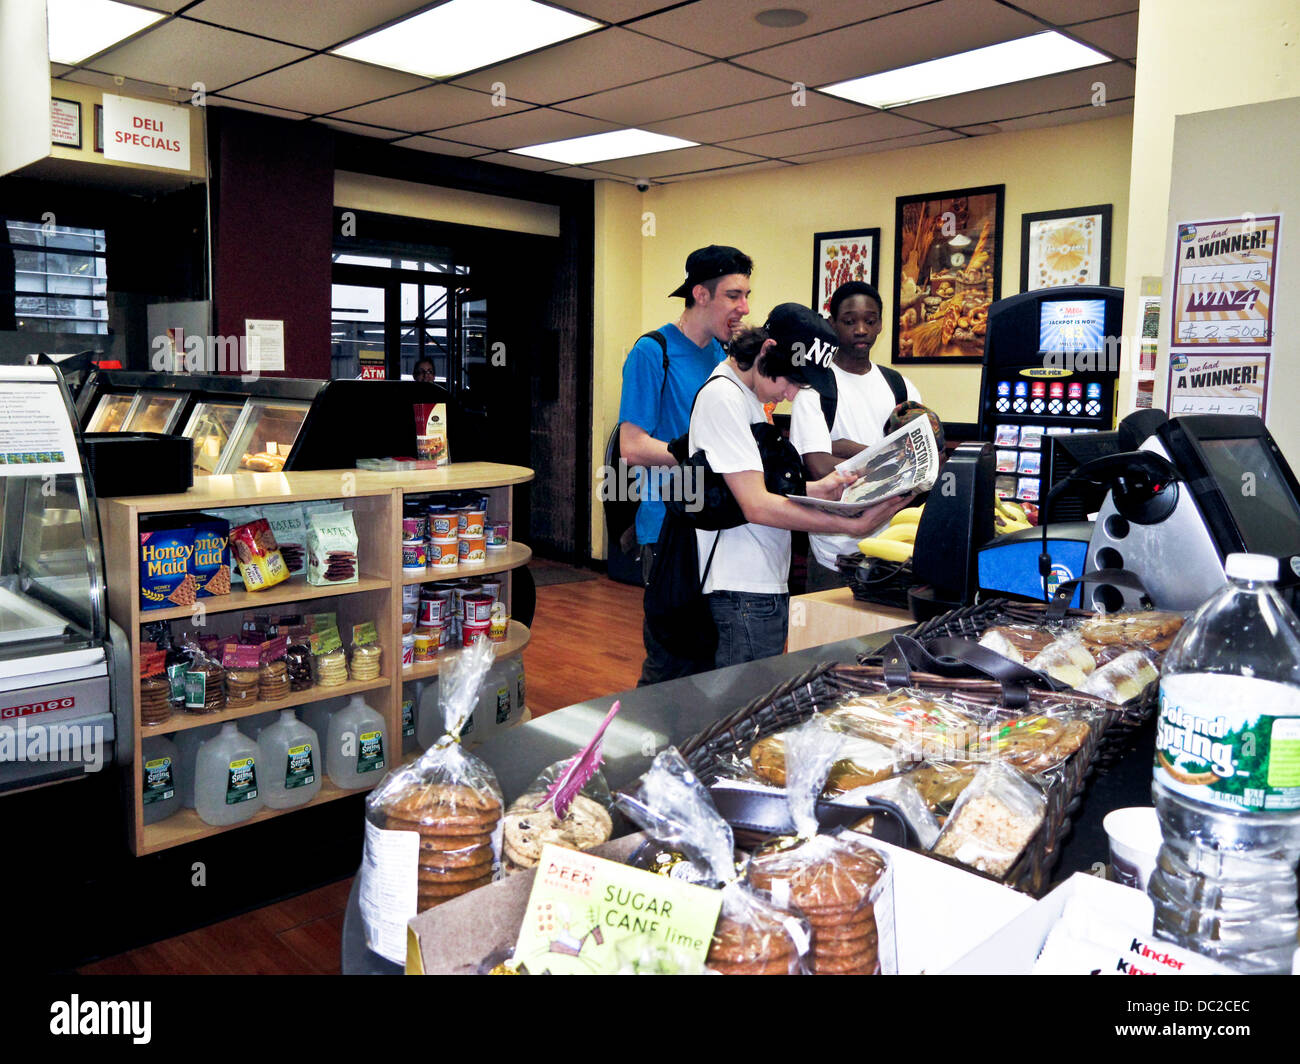 3 teen boys at New York deli counter intently scanning tabloid newspaper headline for news about Boston Marathon - Stock Image